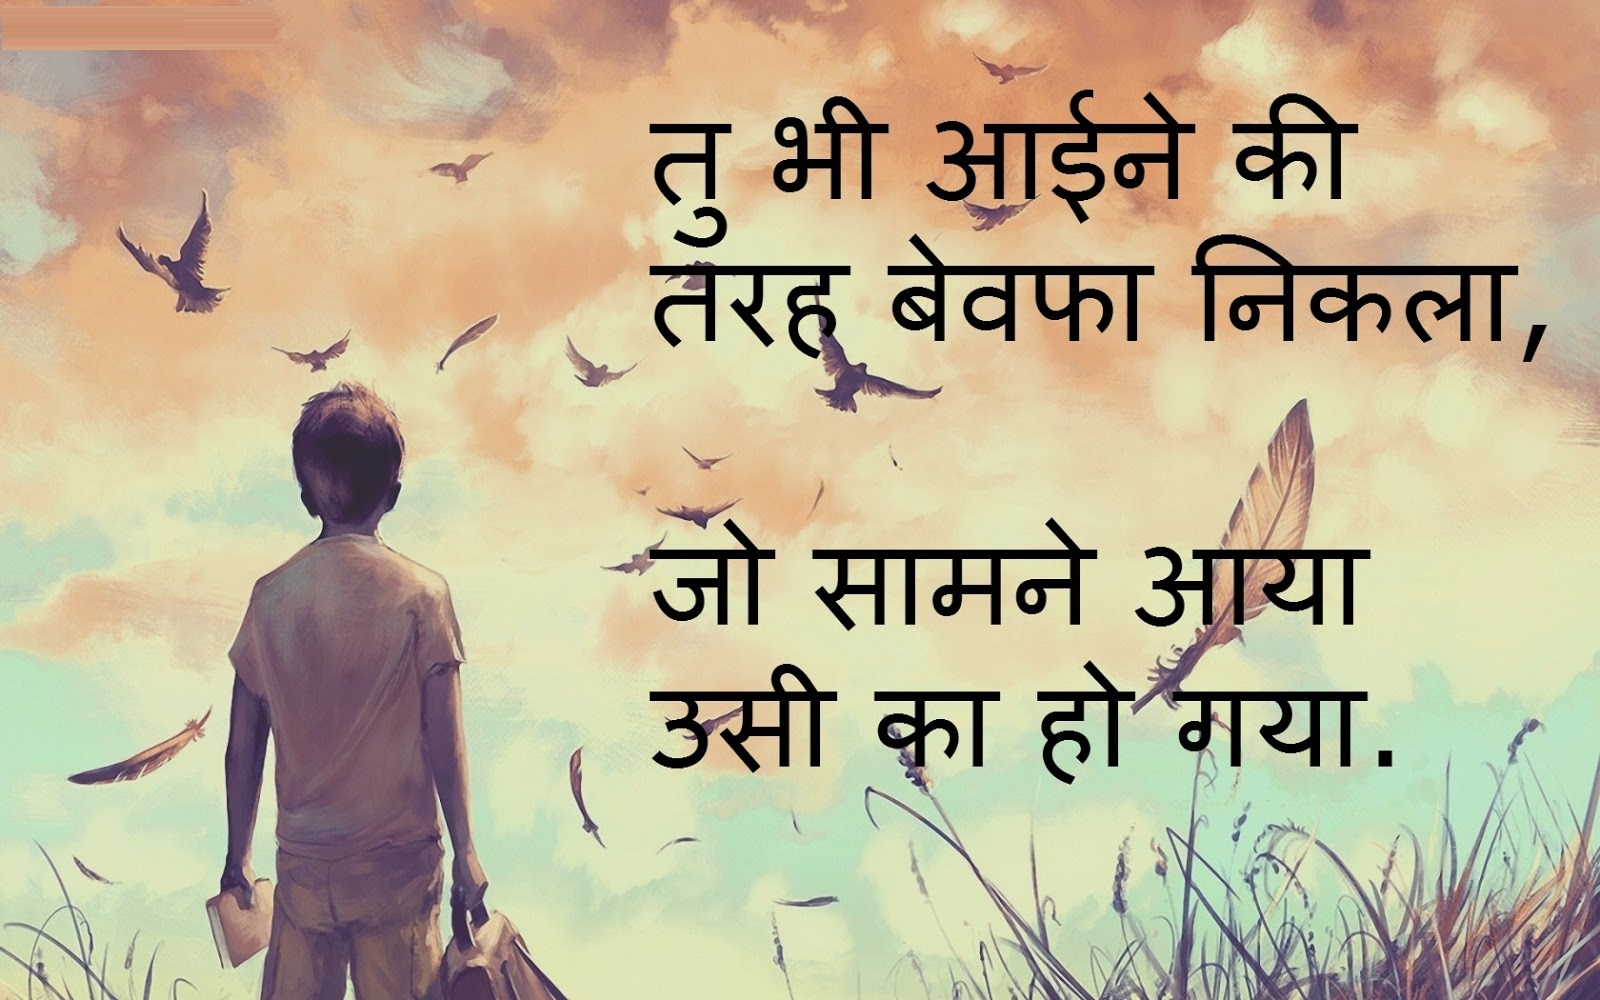 New Shayari Hindi Mai